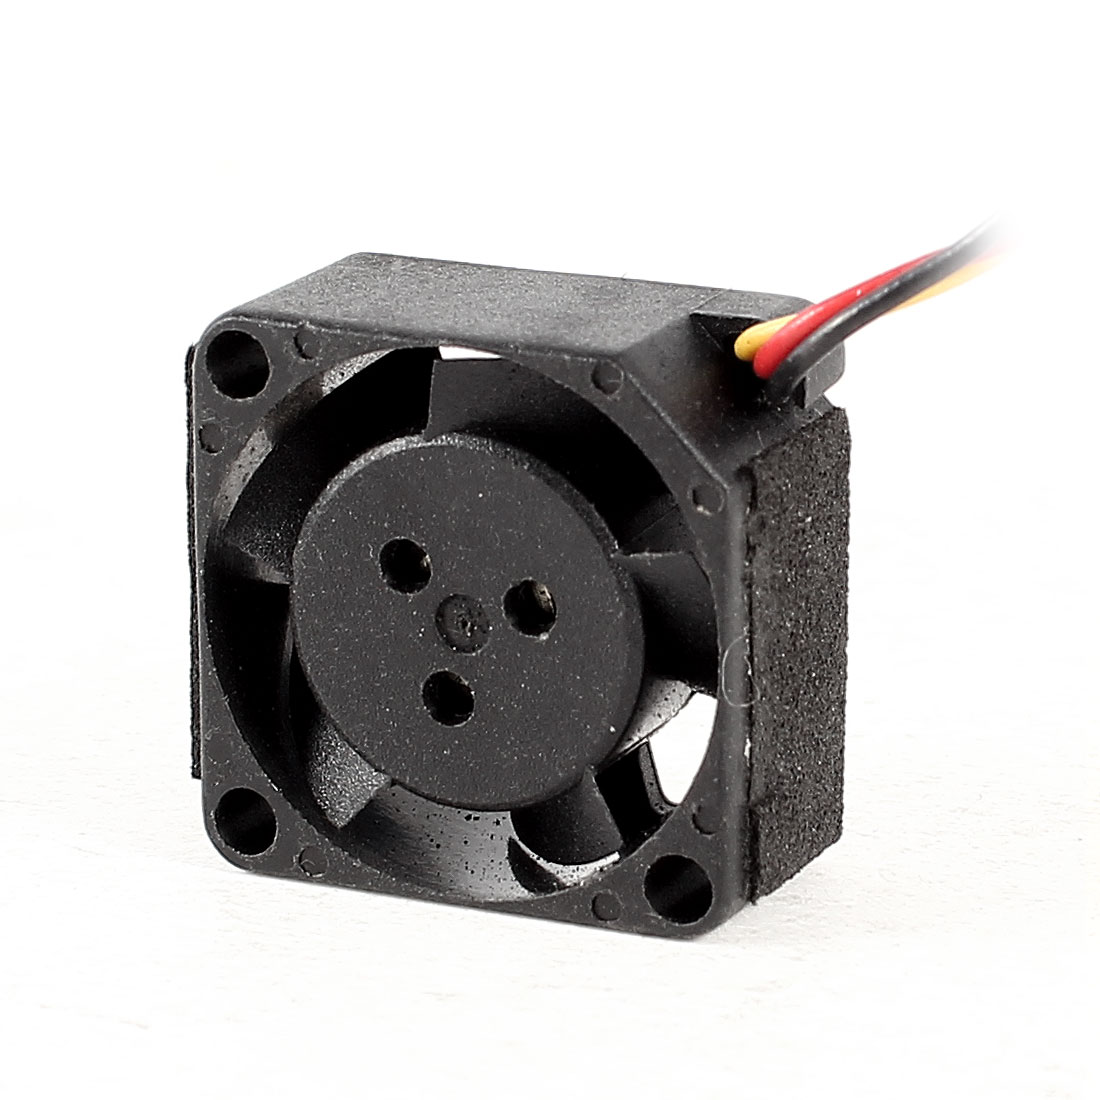 DC 5V 0.2W 20mmx10mm 3 Terminals Connector Black Plastic CPU Cooling Fan Cooler